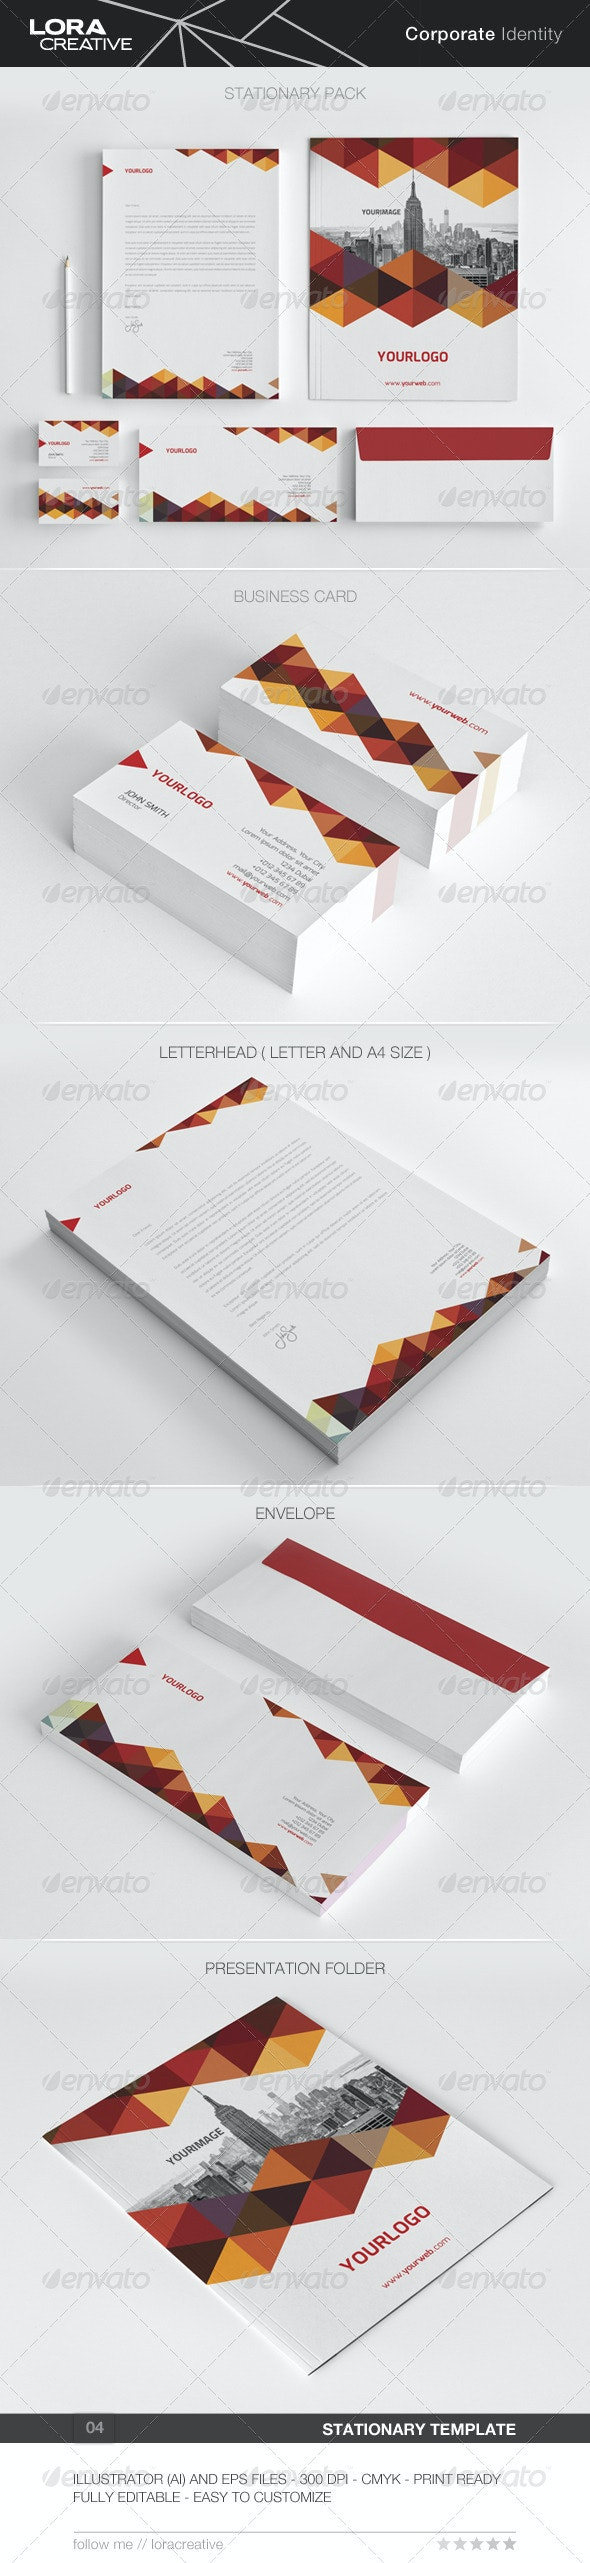 Modern Stationary Pack - 04 - Stationery Print Templates